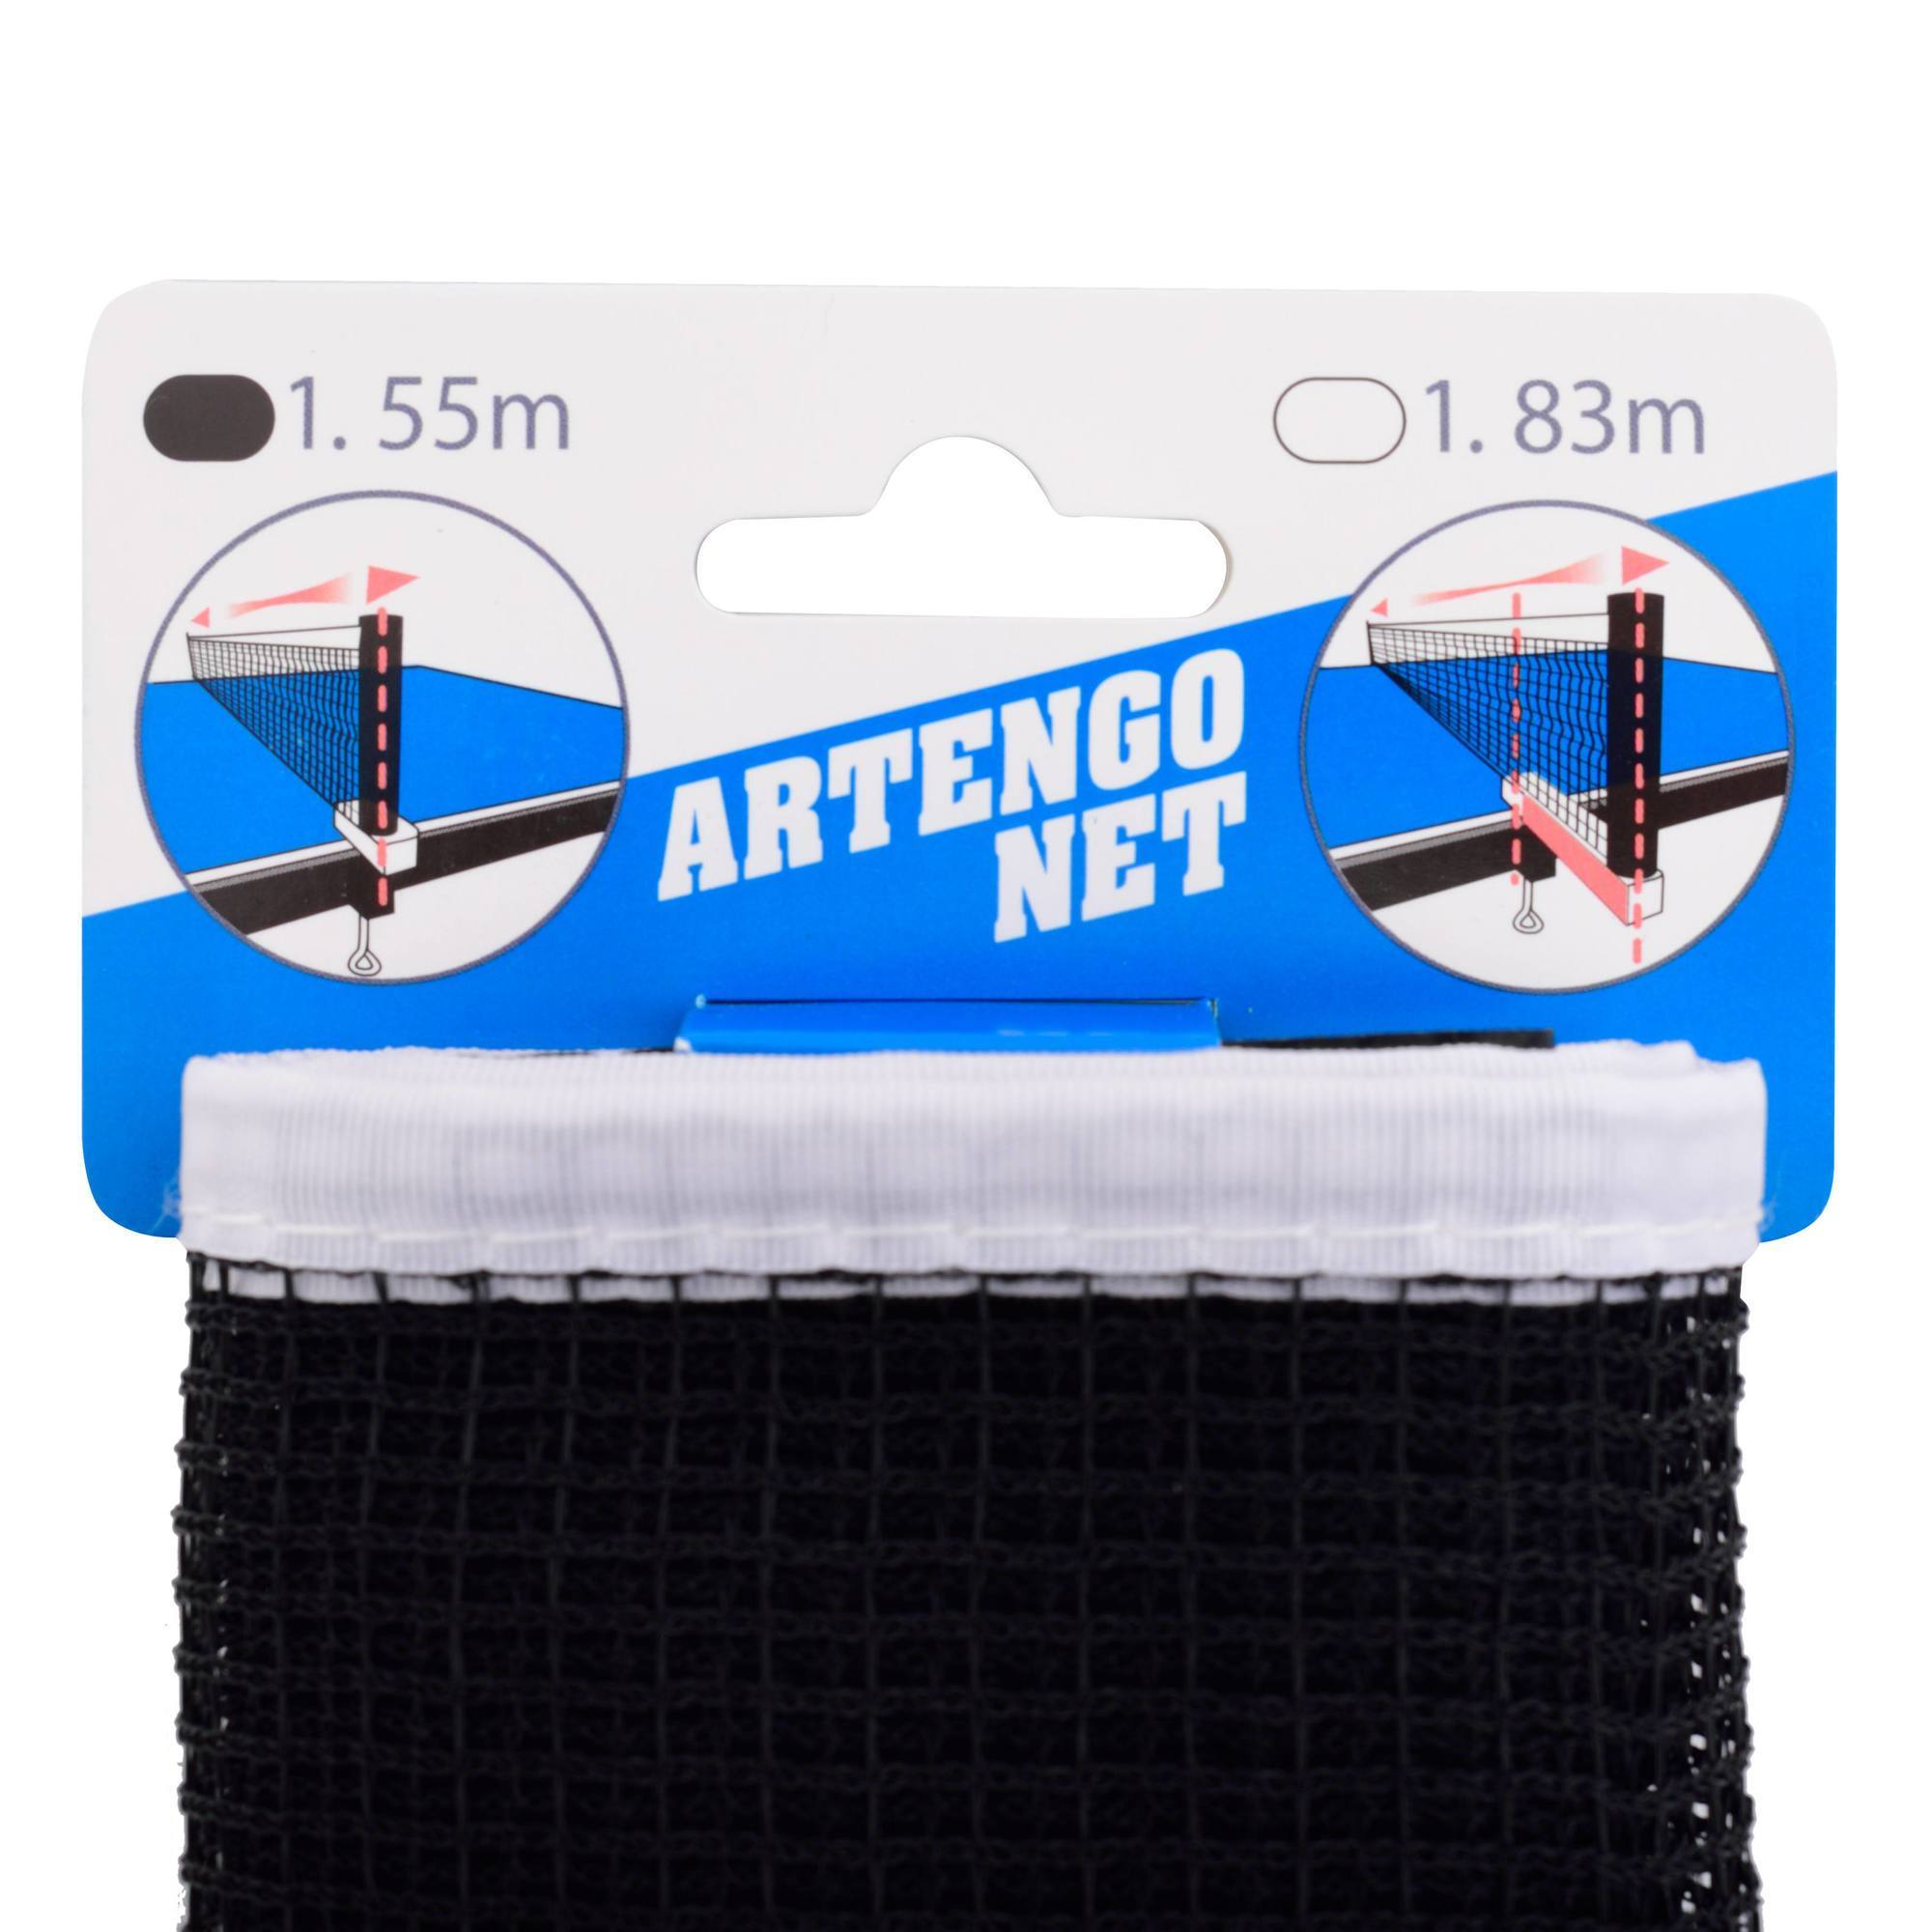 Filet de tennis de table ARTENGO NET 155 cm